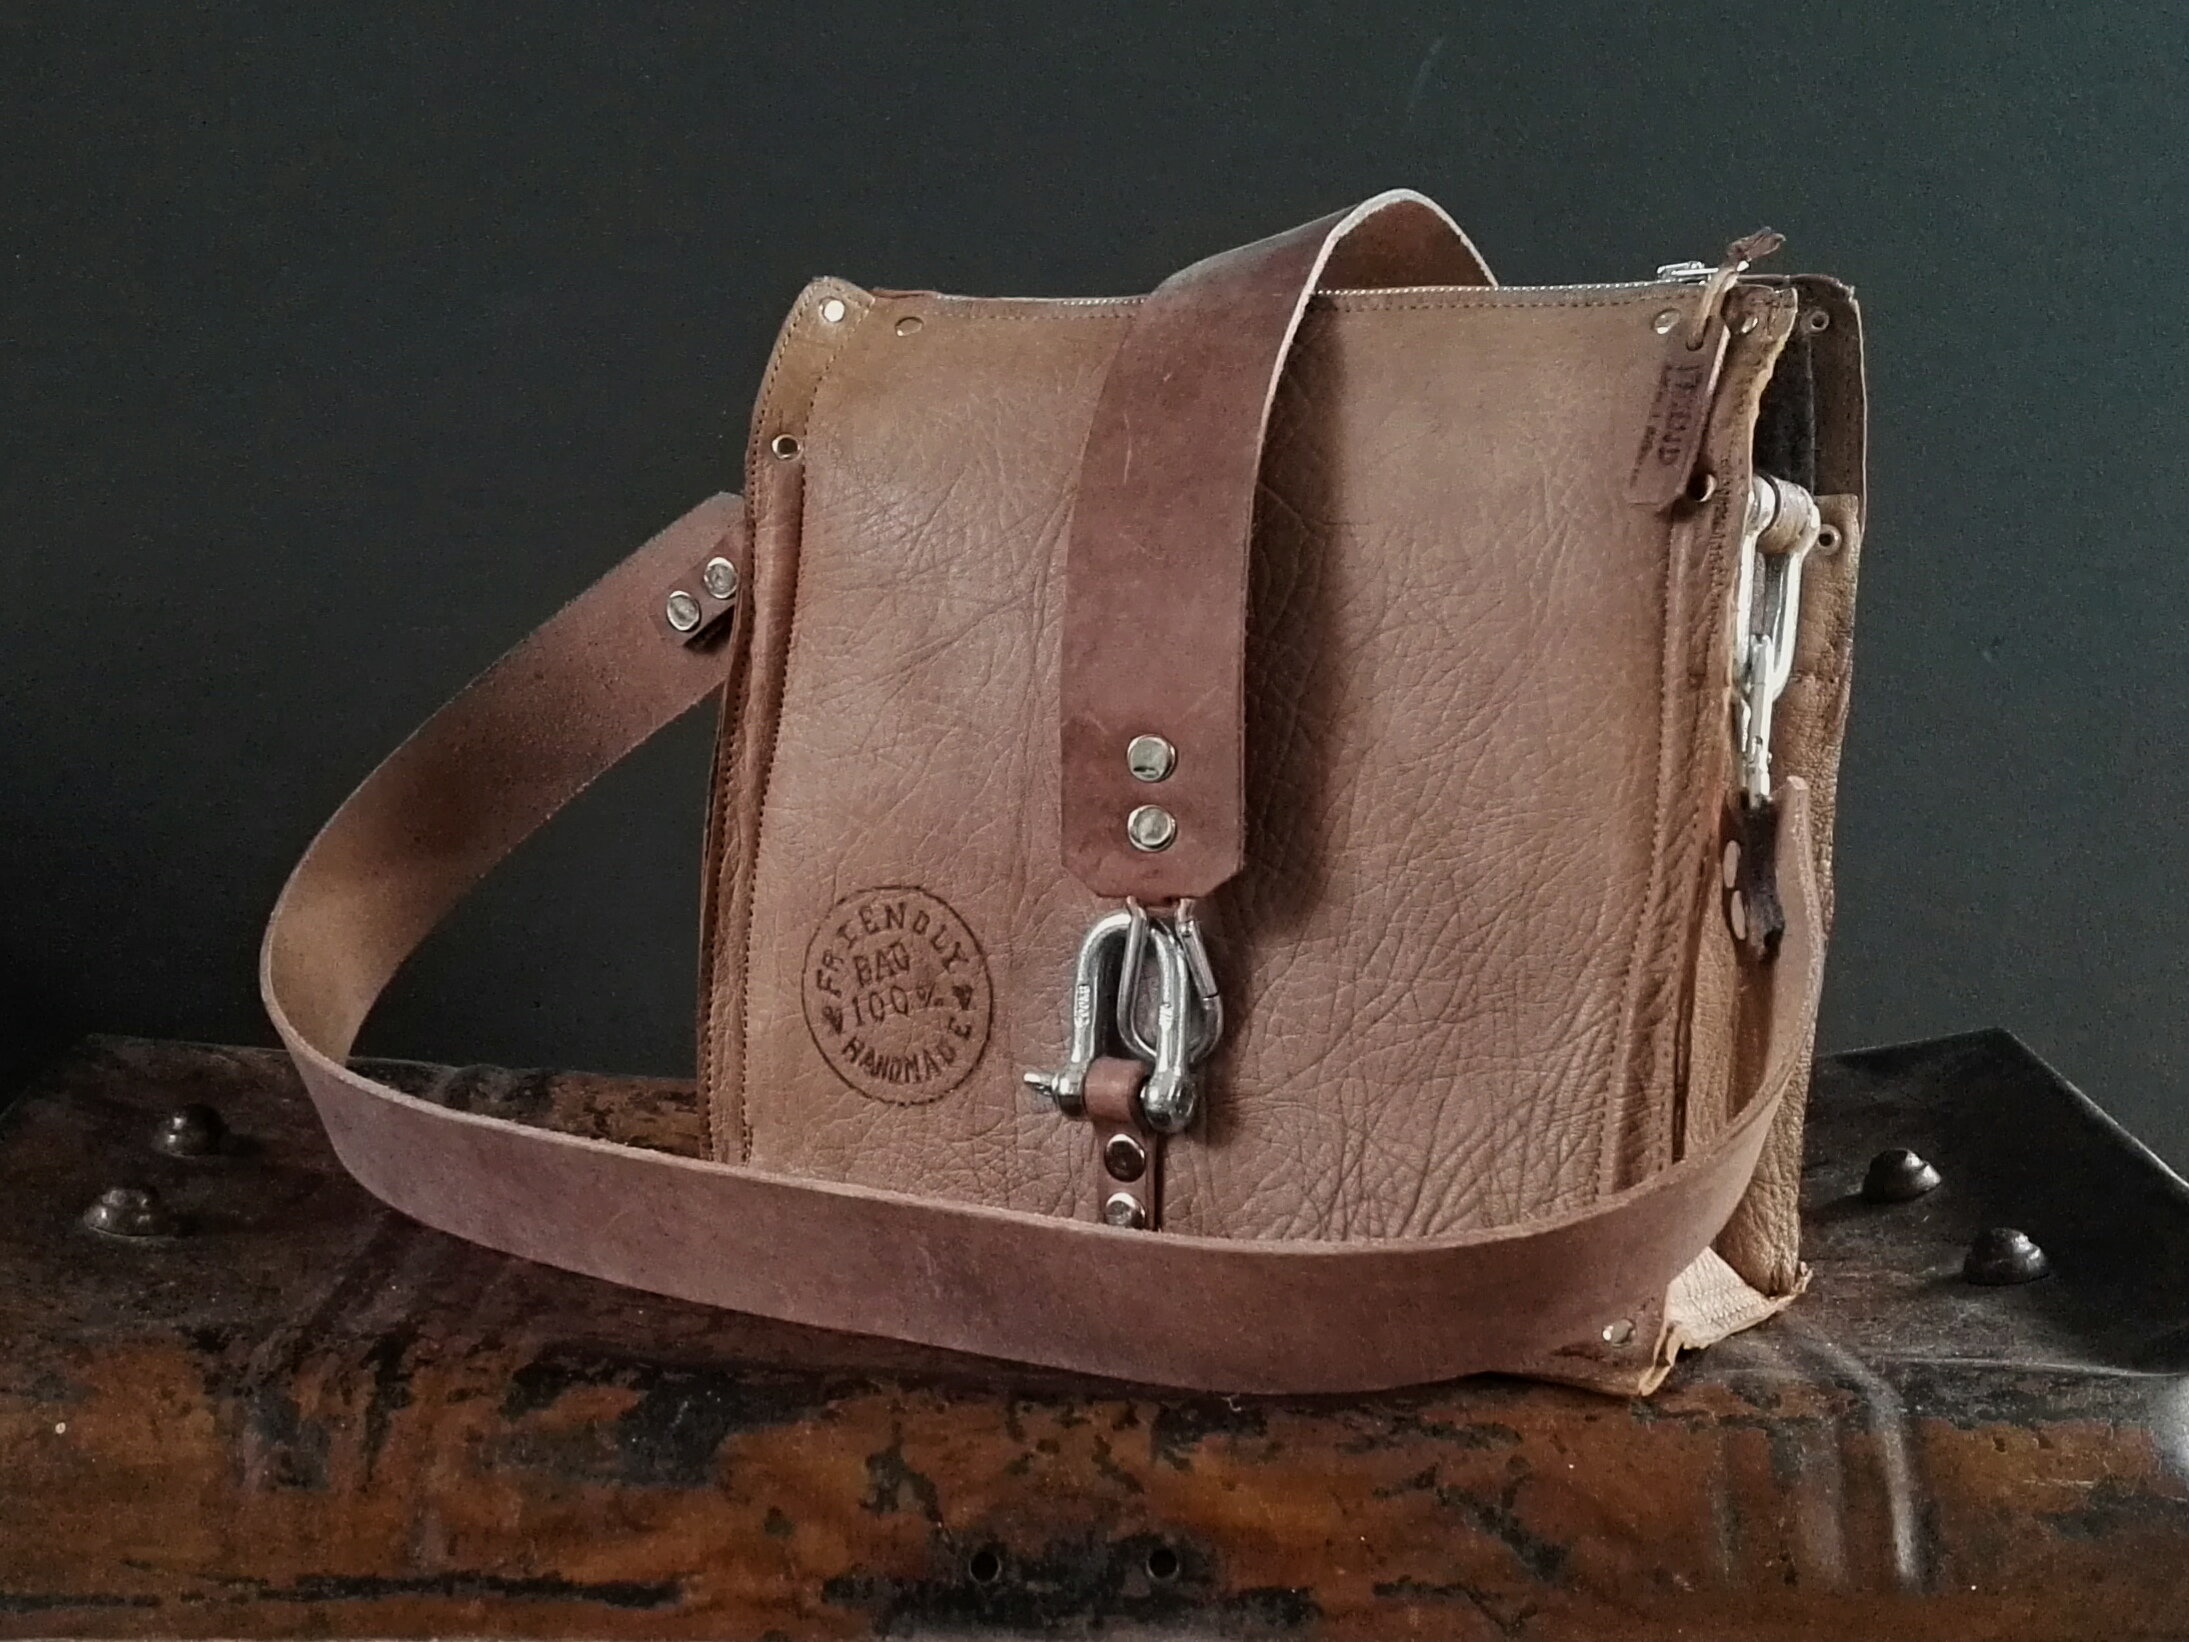 Combinatie van de Friendly Bag mini en de normale maat €75,00